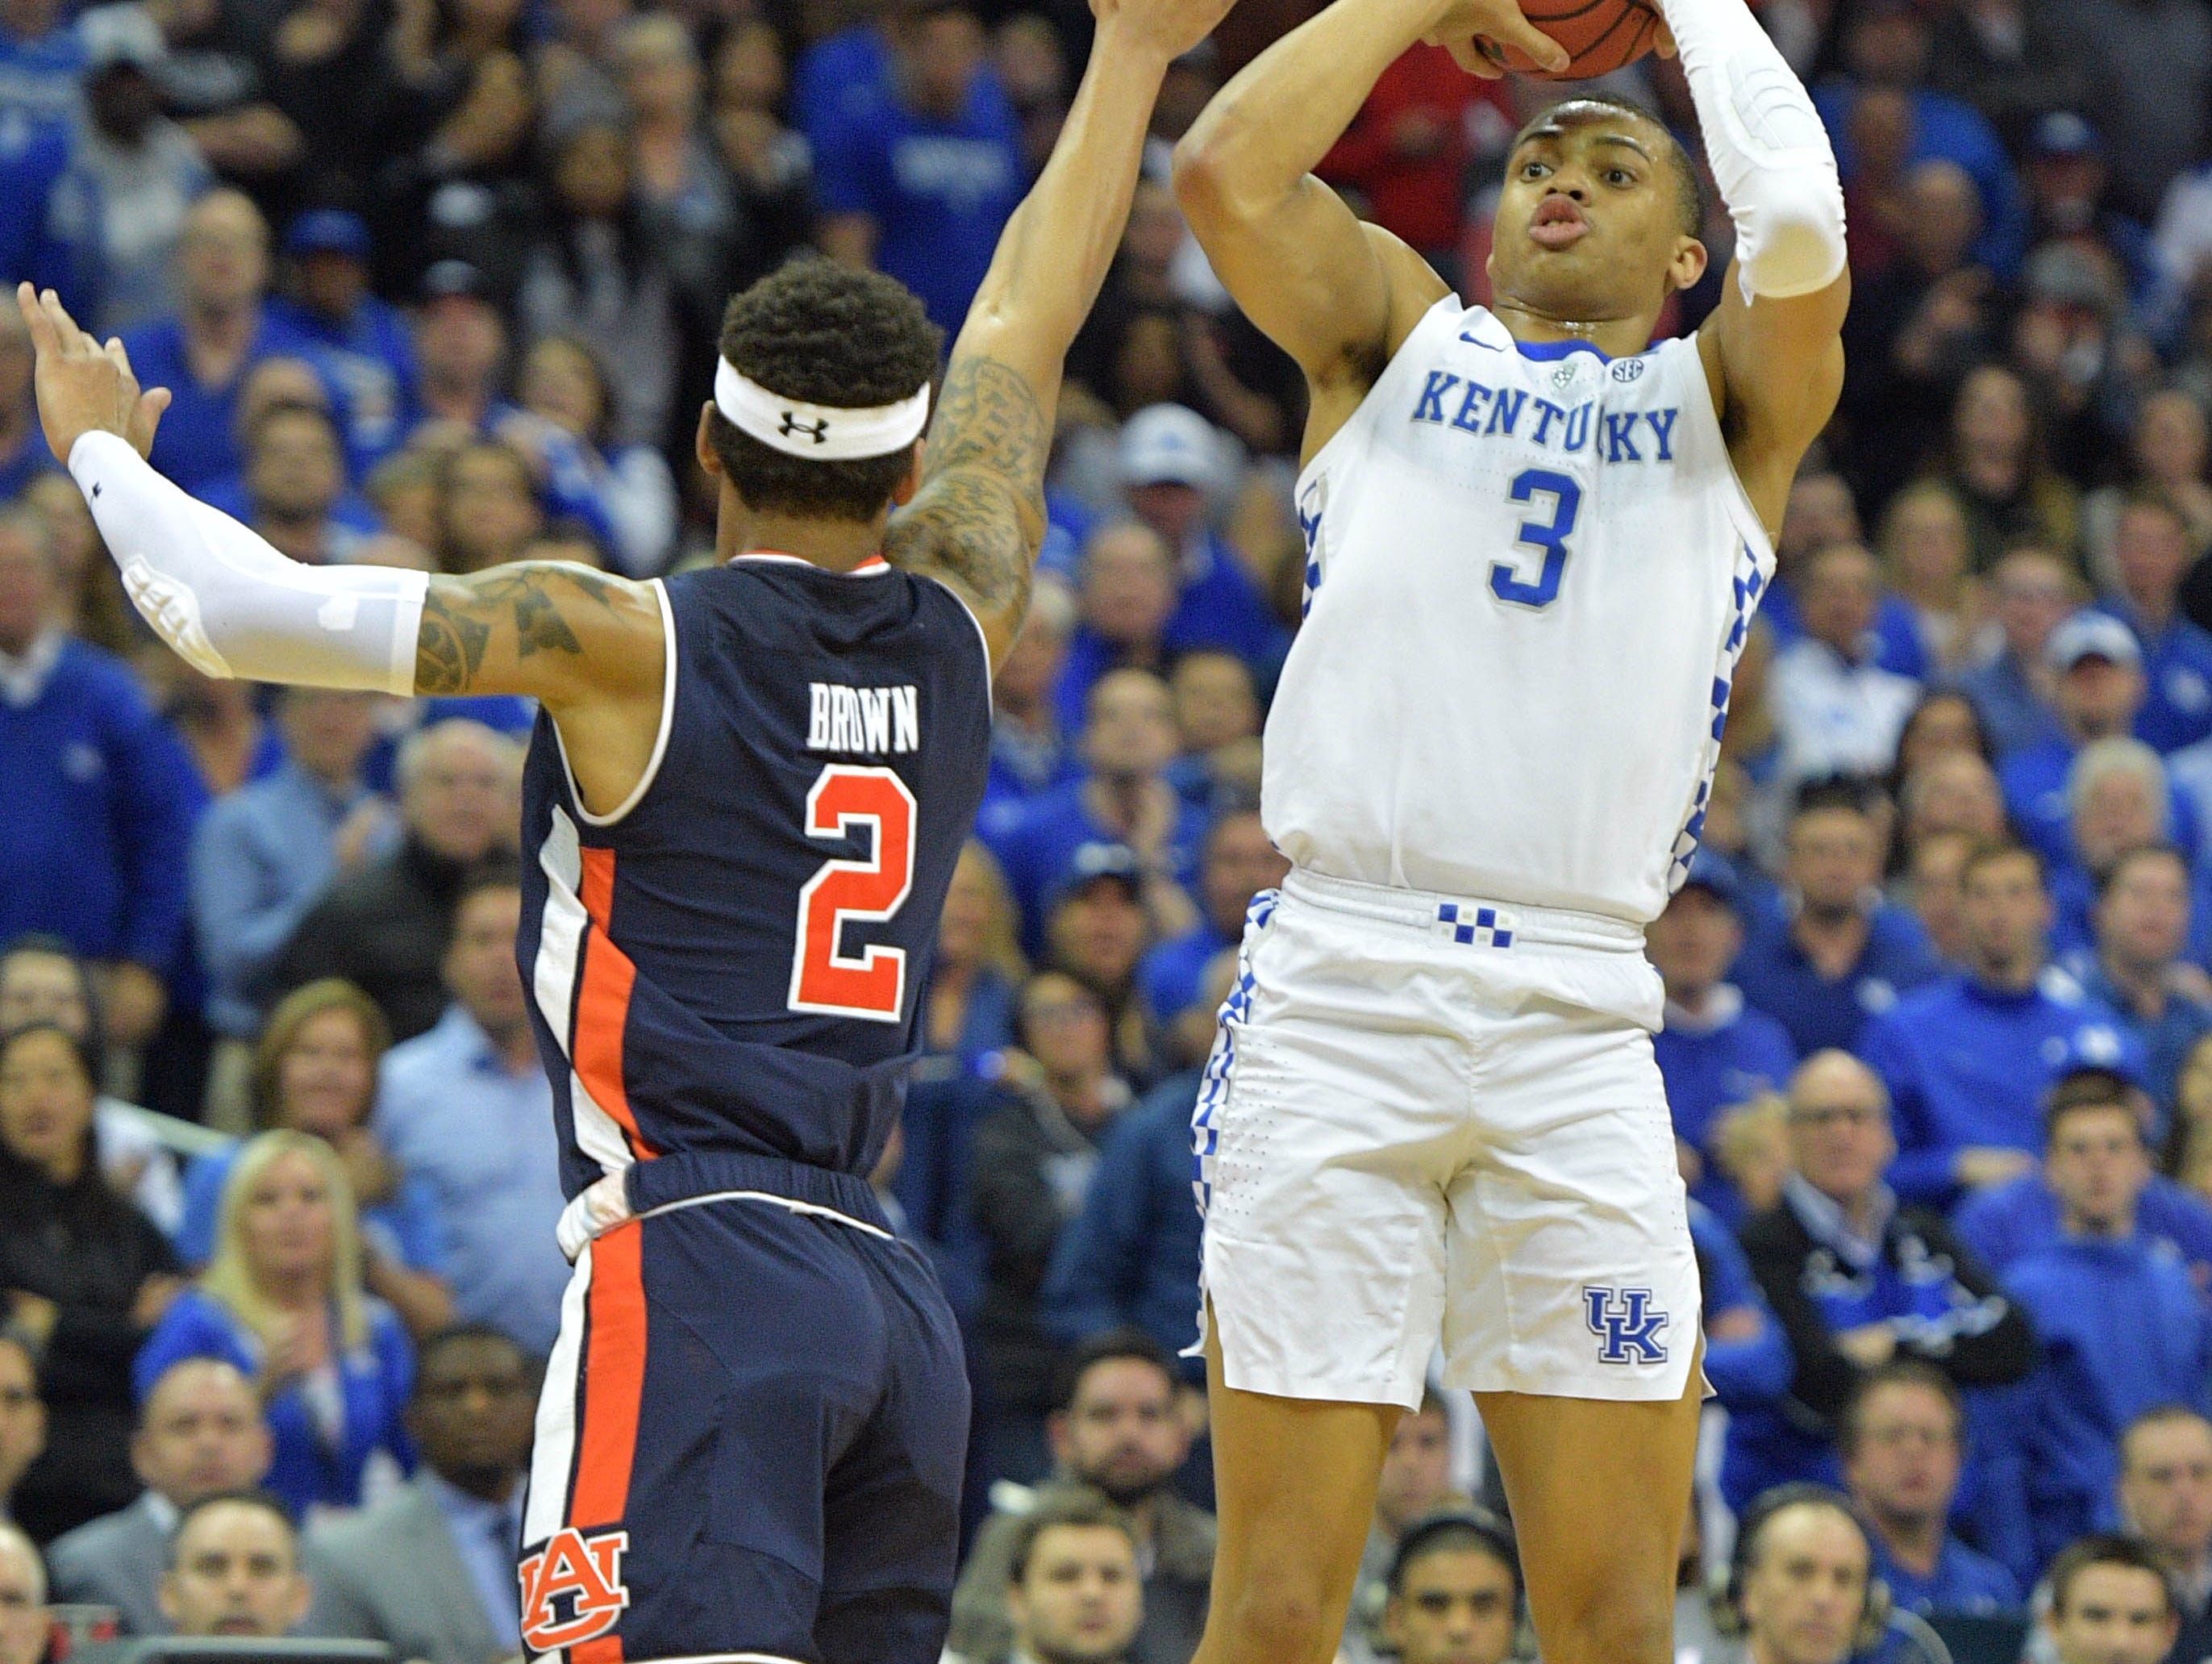 Mar 31, 2019; Kansas City, MO, United States; Kentucky Wildcats guard Keldon Johnson (3) shoots over Auburn Tigers guard Bryce Brown (2) during the first half in the championship game of the midwest regional of the 2019 NCAA Tournament at Sprint Center. Mandatory Credit: Denny Medley-USA TODAY Sports